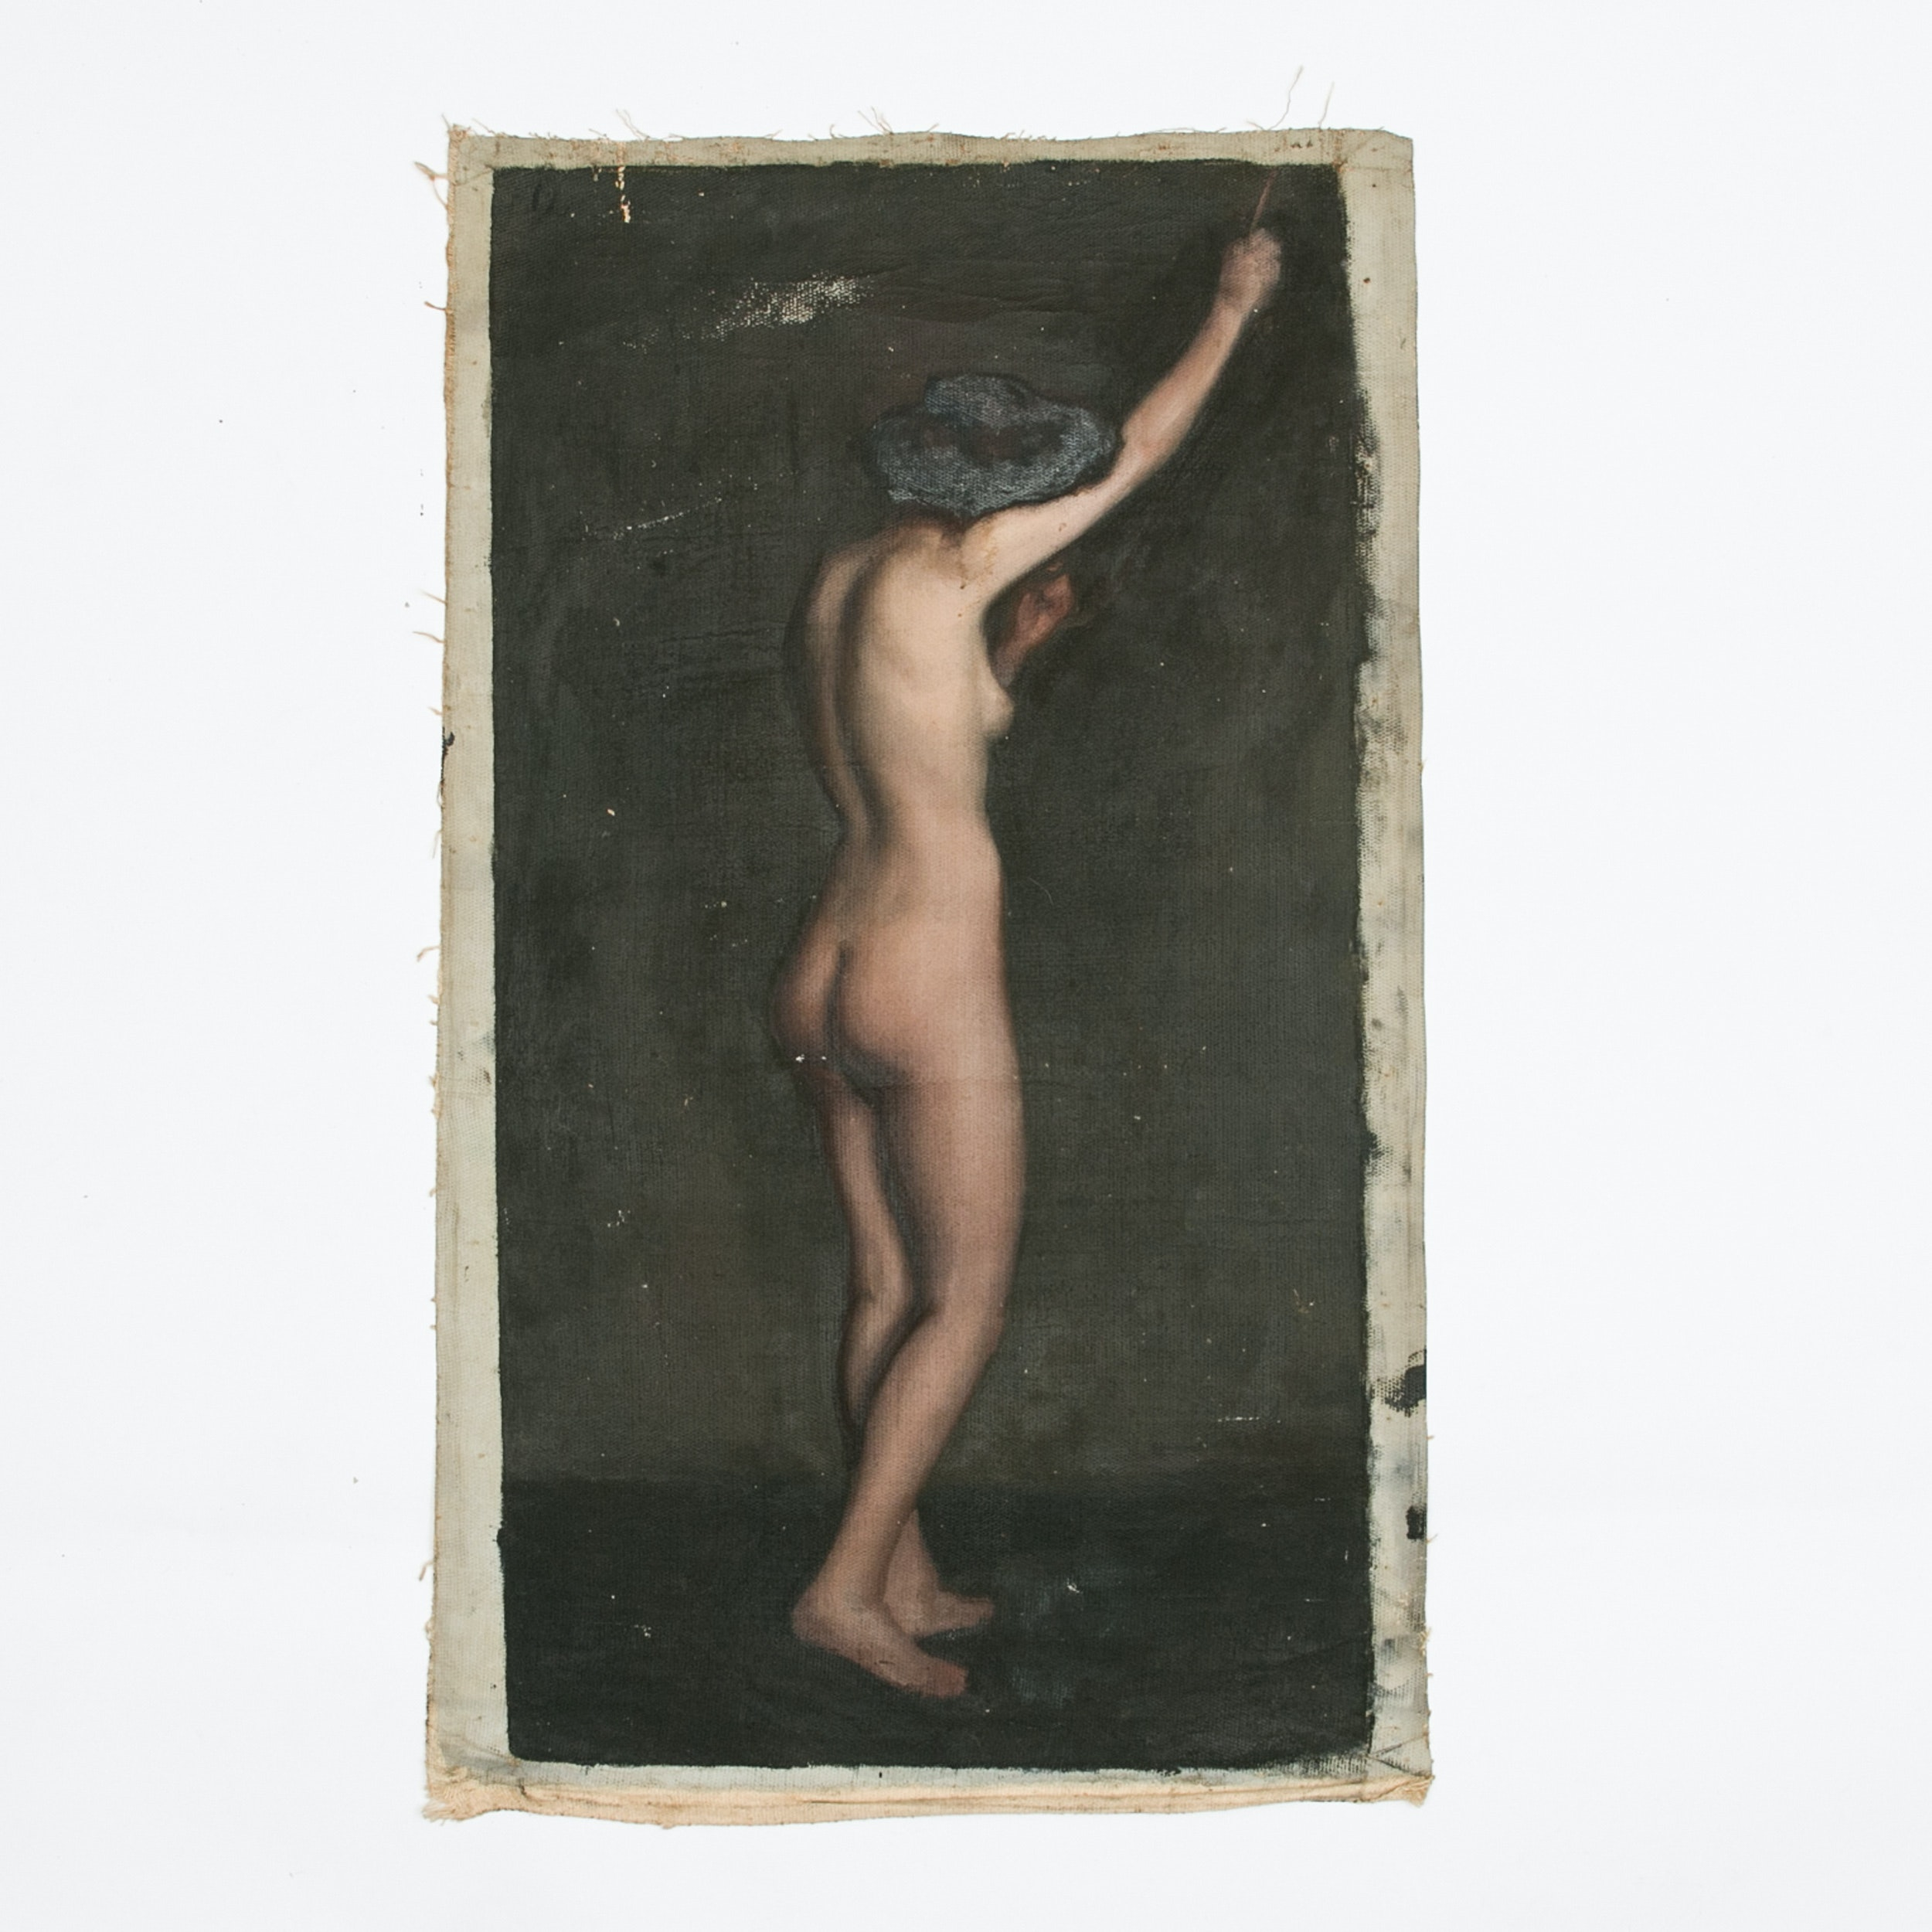 Emily B. Waite, Study of a Nude with Raised Arm, Oil on Unstretched Canvas